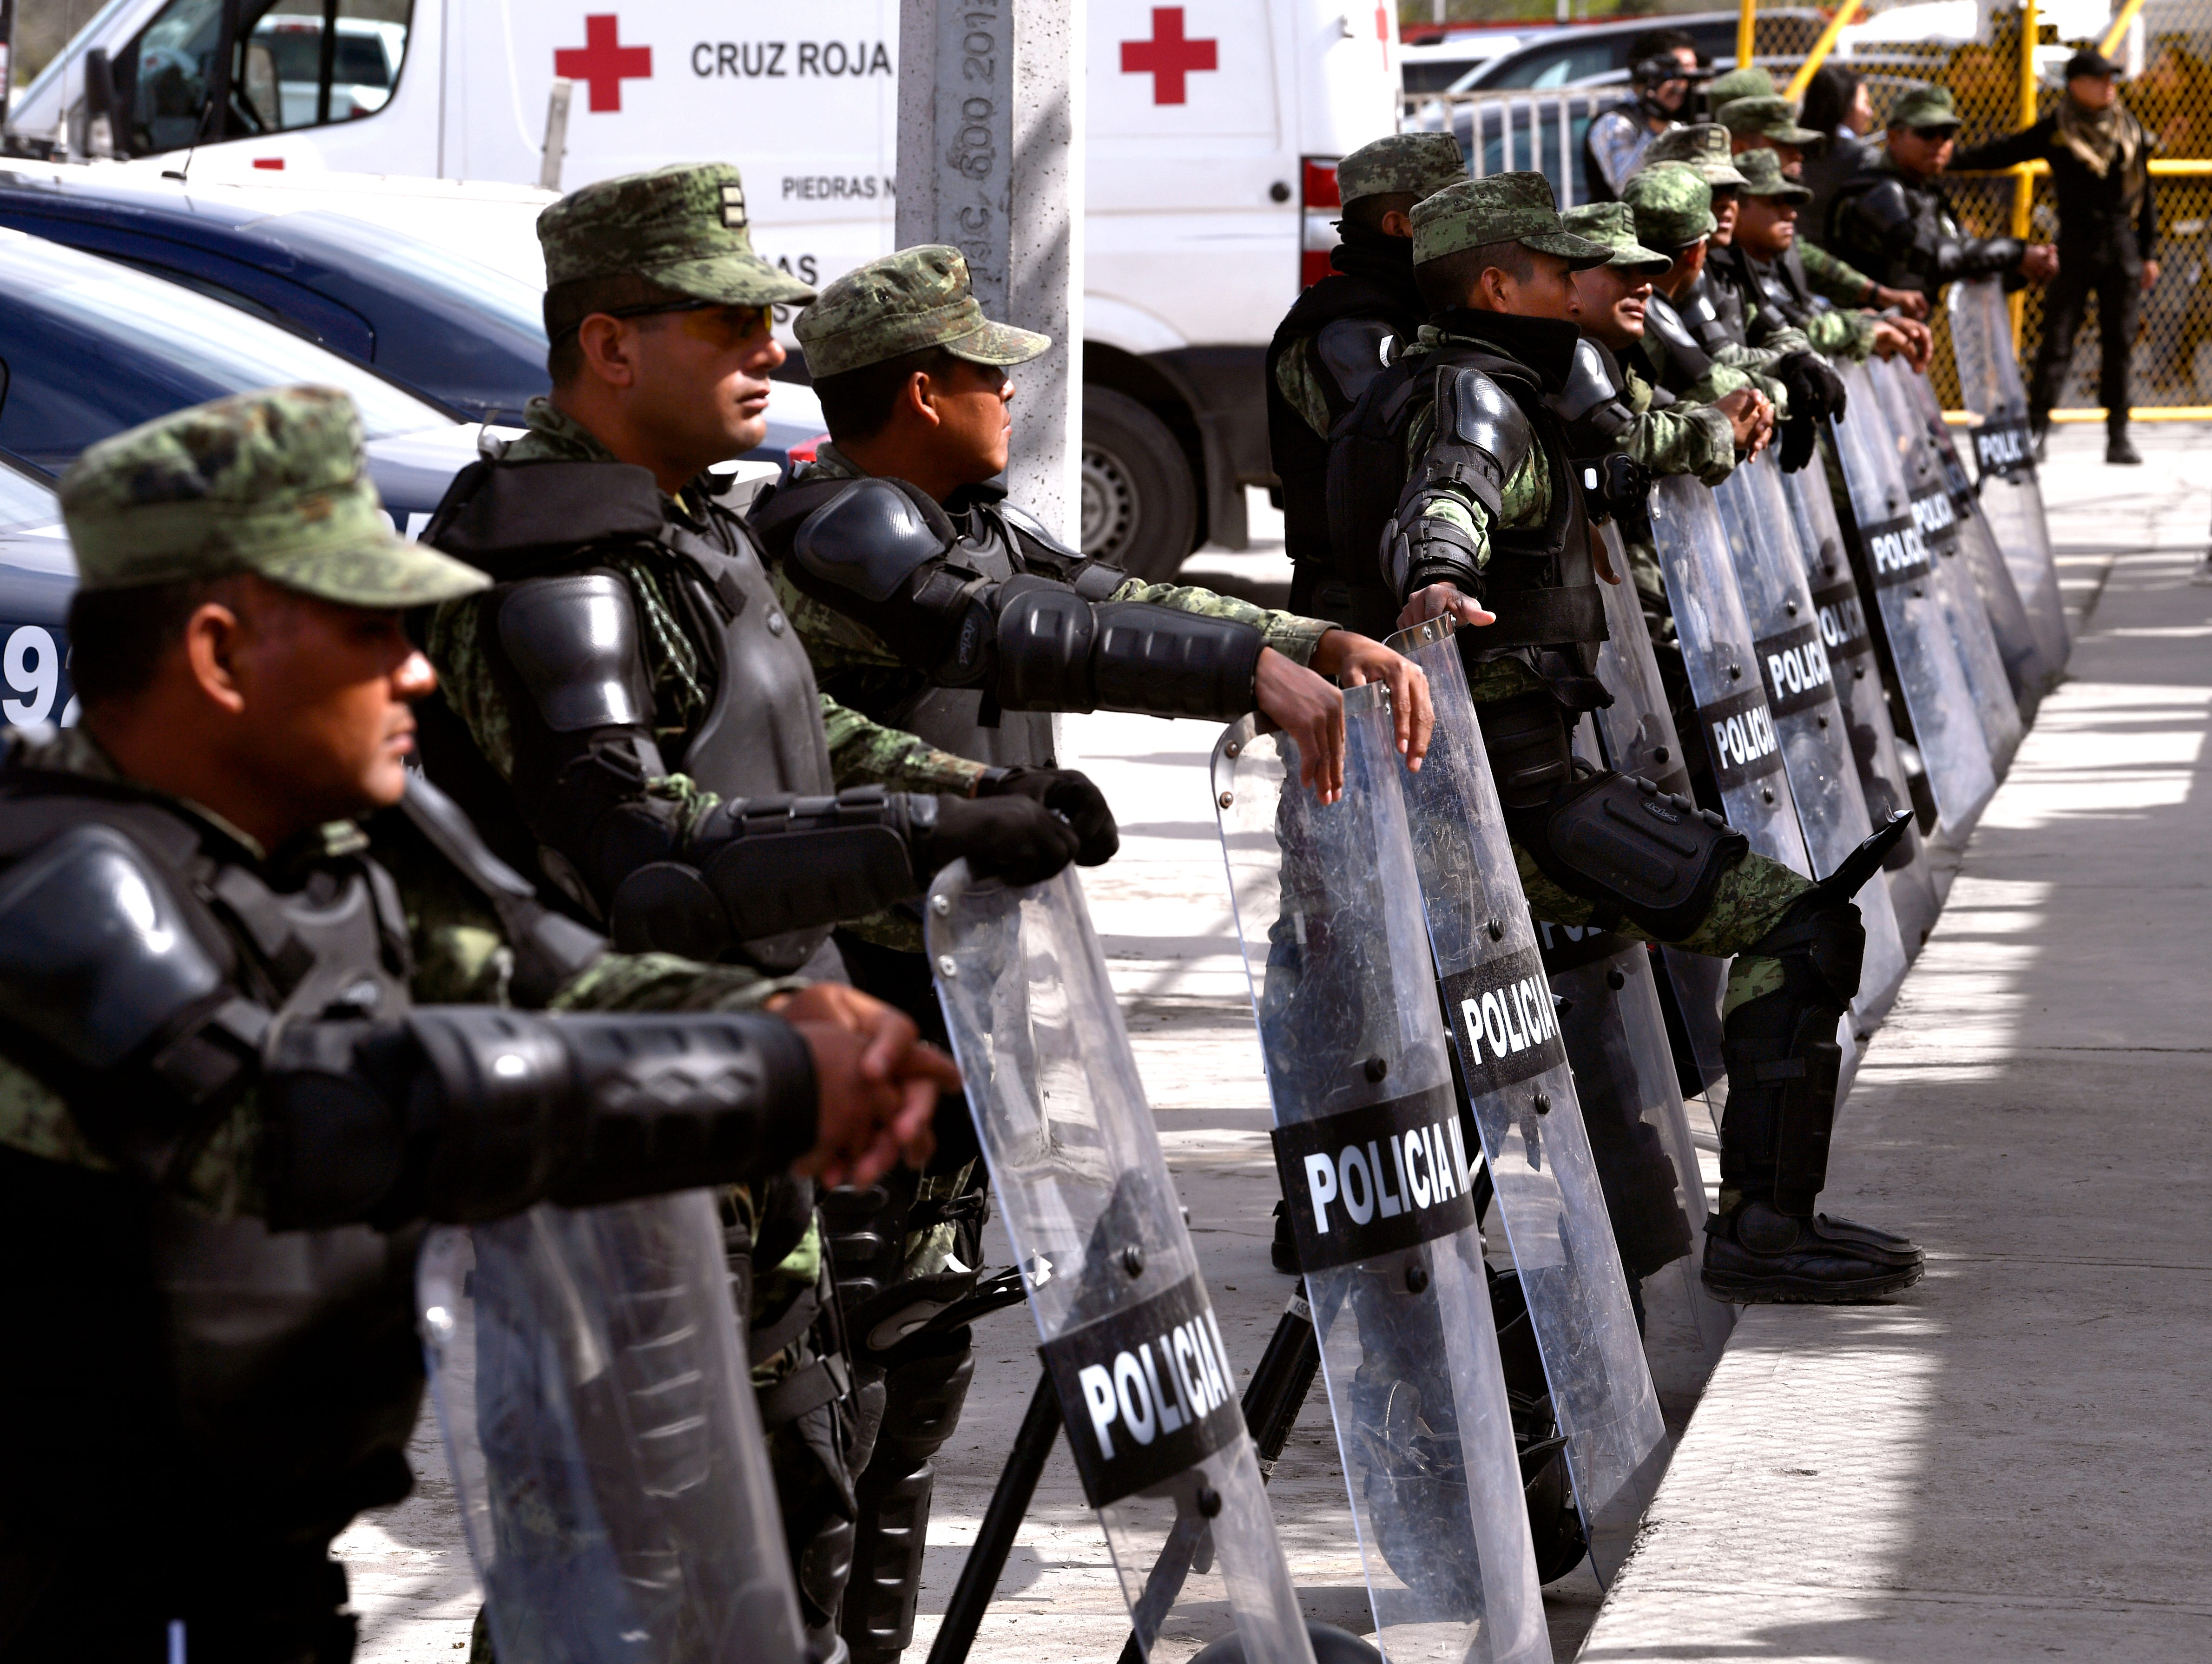 Mexican Federales stand outside the Migrant Hostel in Piedras Negras Thursday Feb. 7, 2019. The show of force included another line of officers with shields on the road behind these, plus truckloads of uniformed military troops also standing guard.